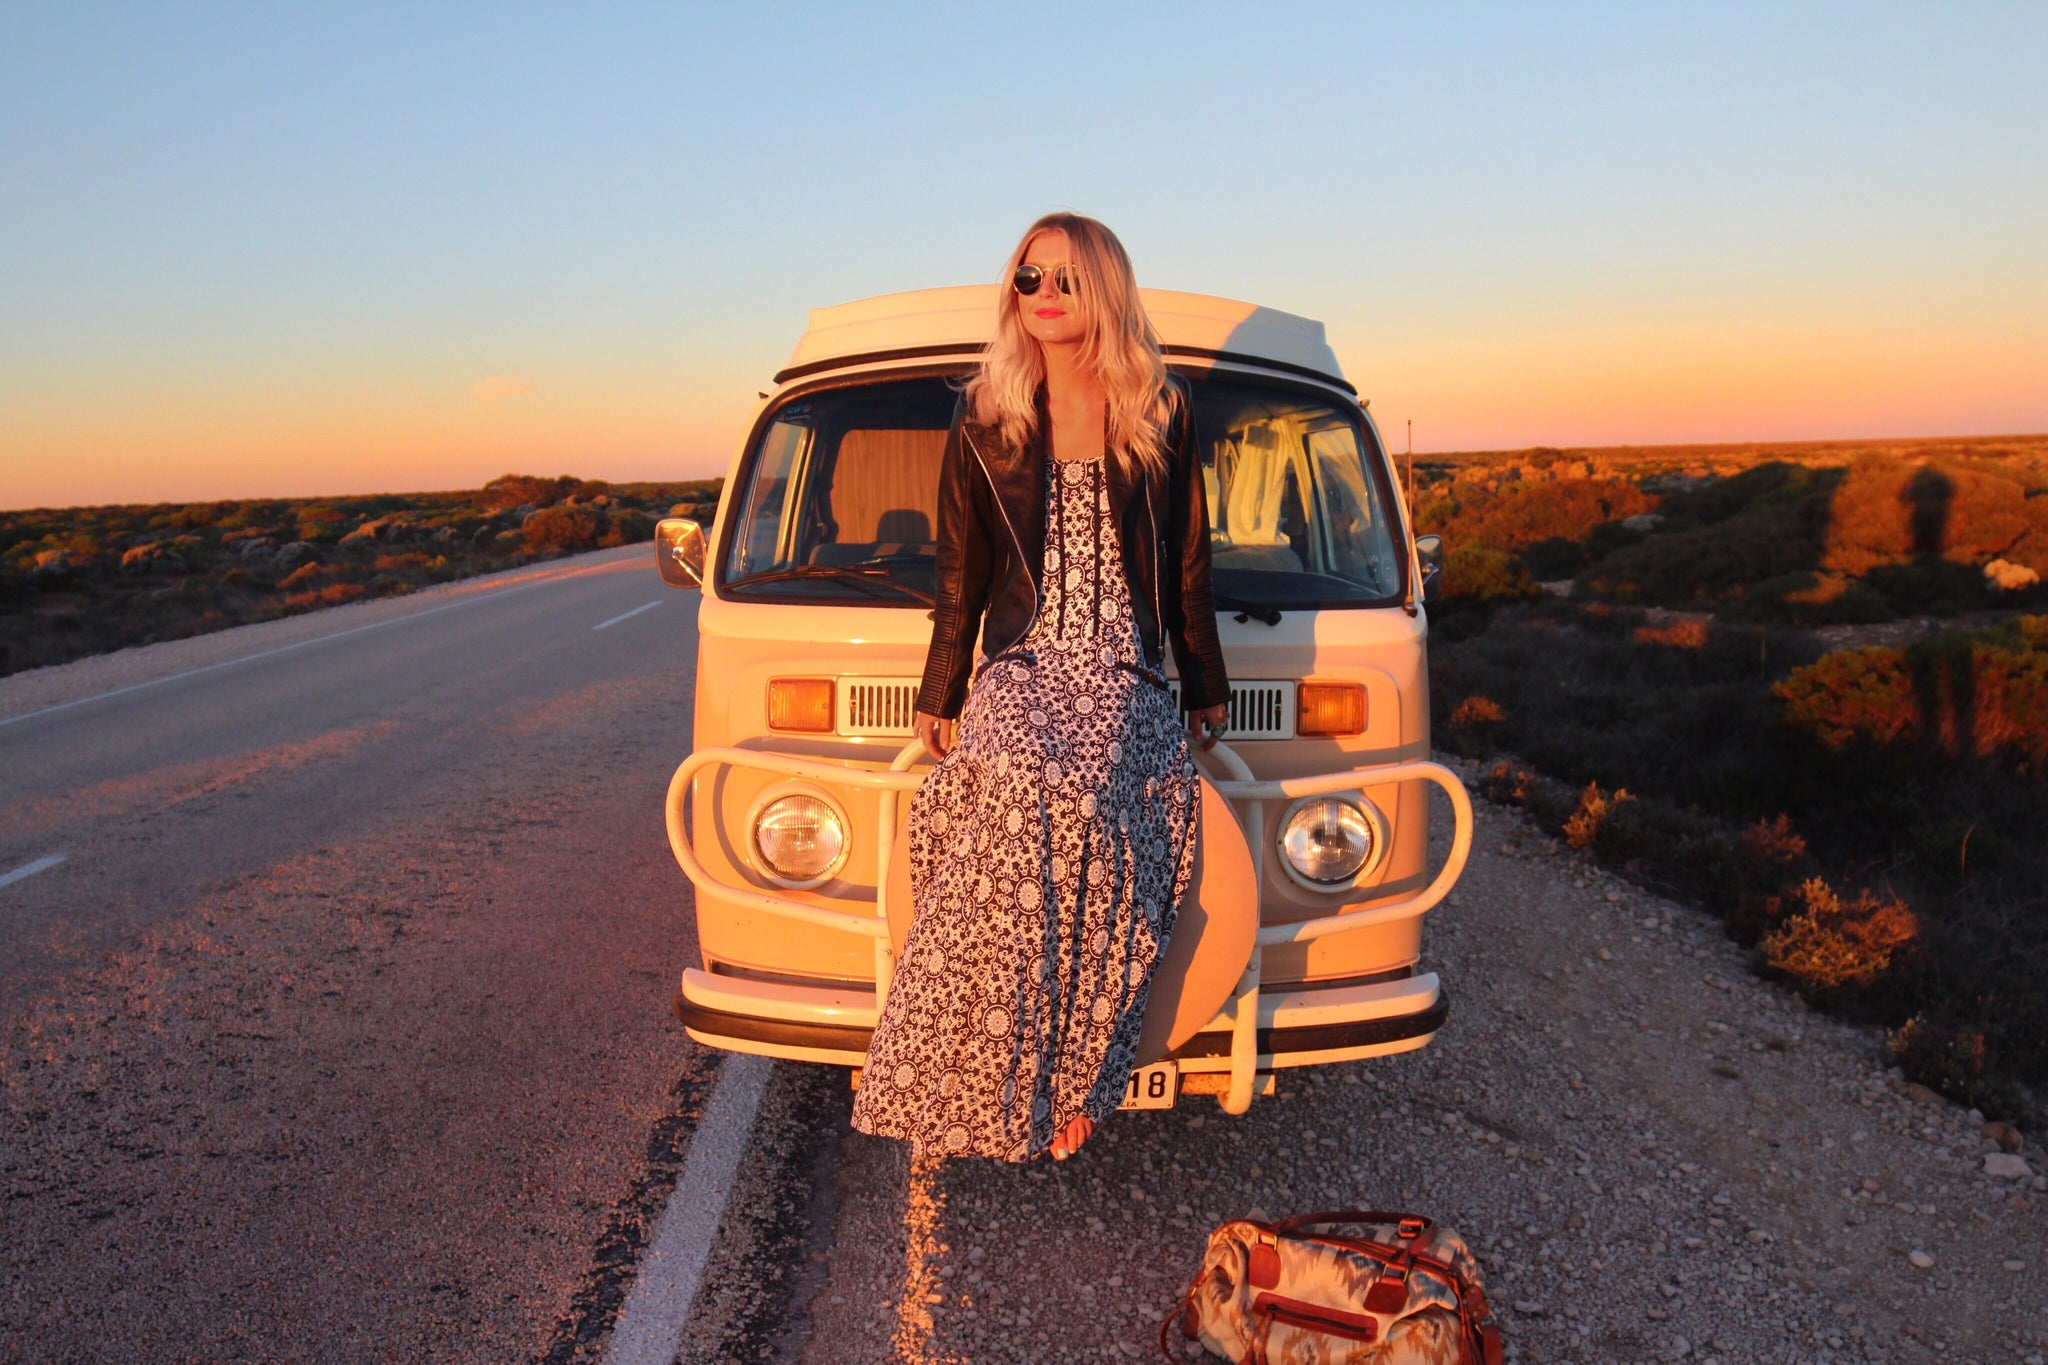 on the road with elisecook kivari bohemian style clothes vanlife blue temple drop